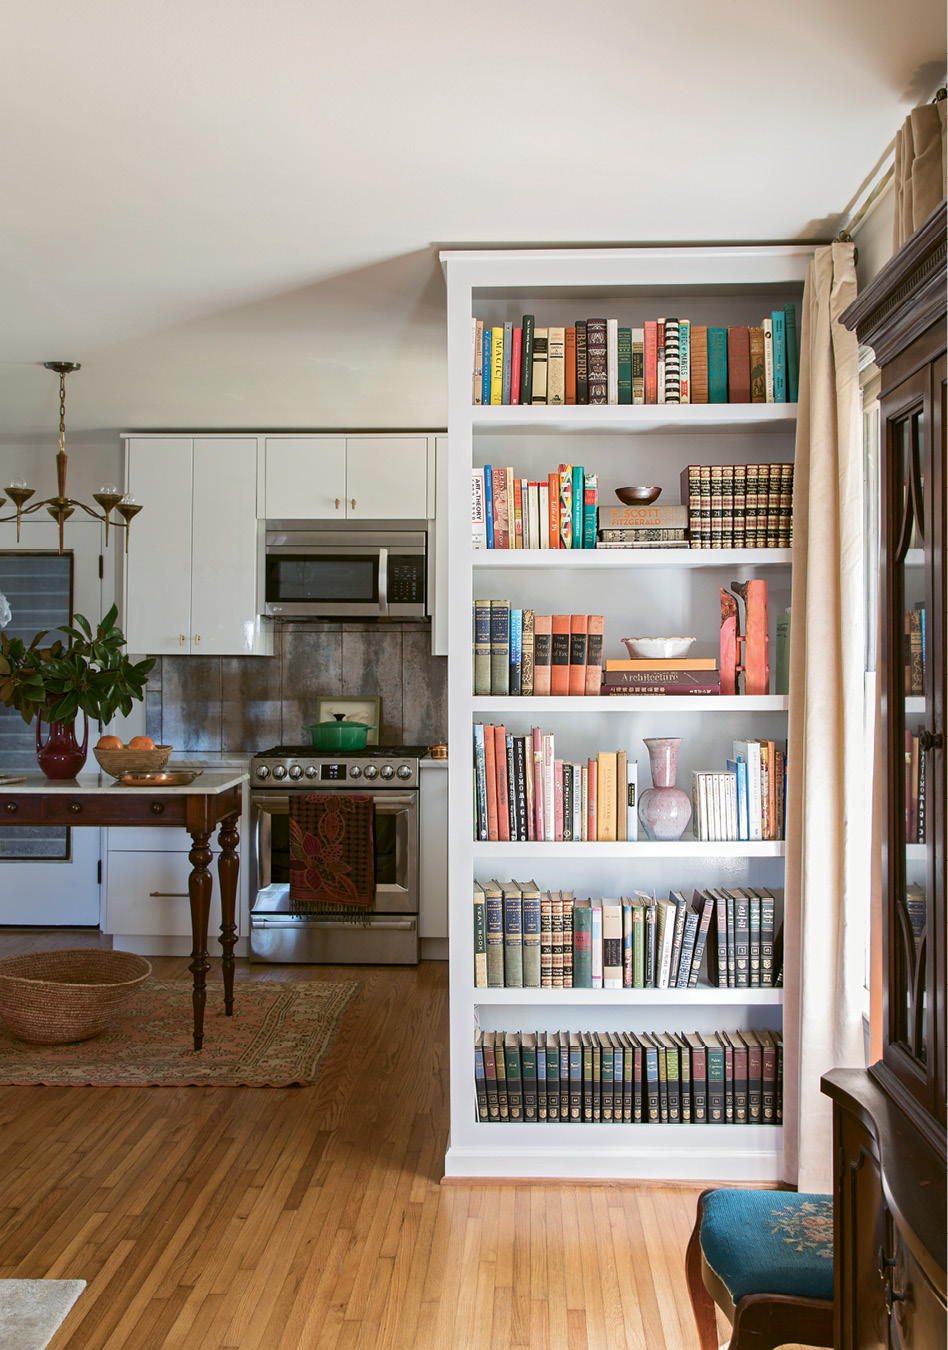 SHELF LIFE: To modernize the layout, Glennon advised taking down the wall separating the kitchen and dining nook. In its place, she added built-in bookshelves that keep the space visually open while still clearly defining individual rooms.